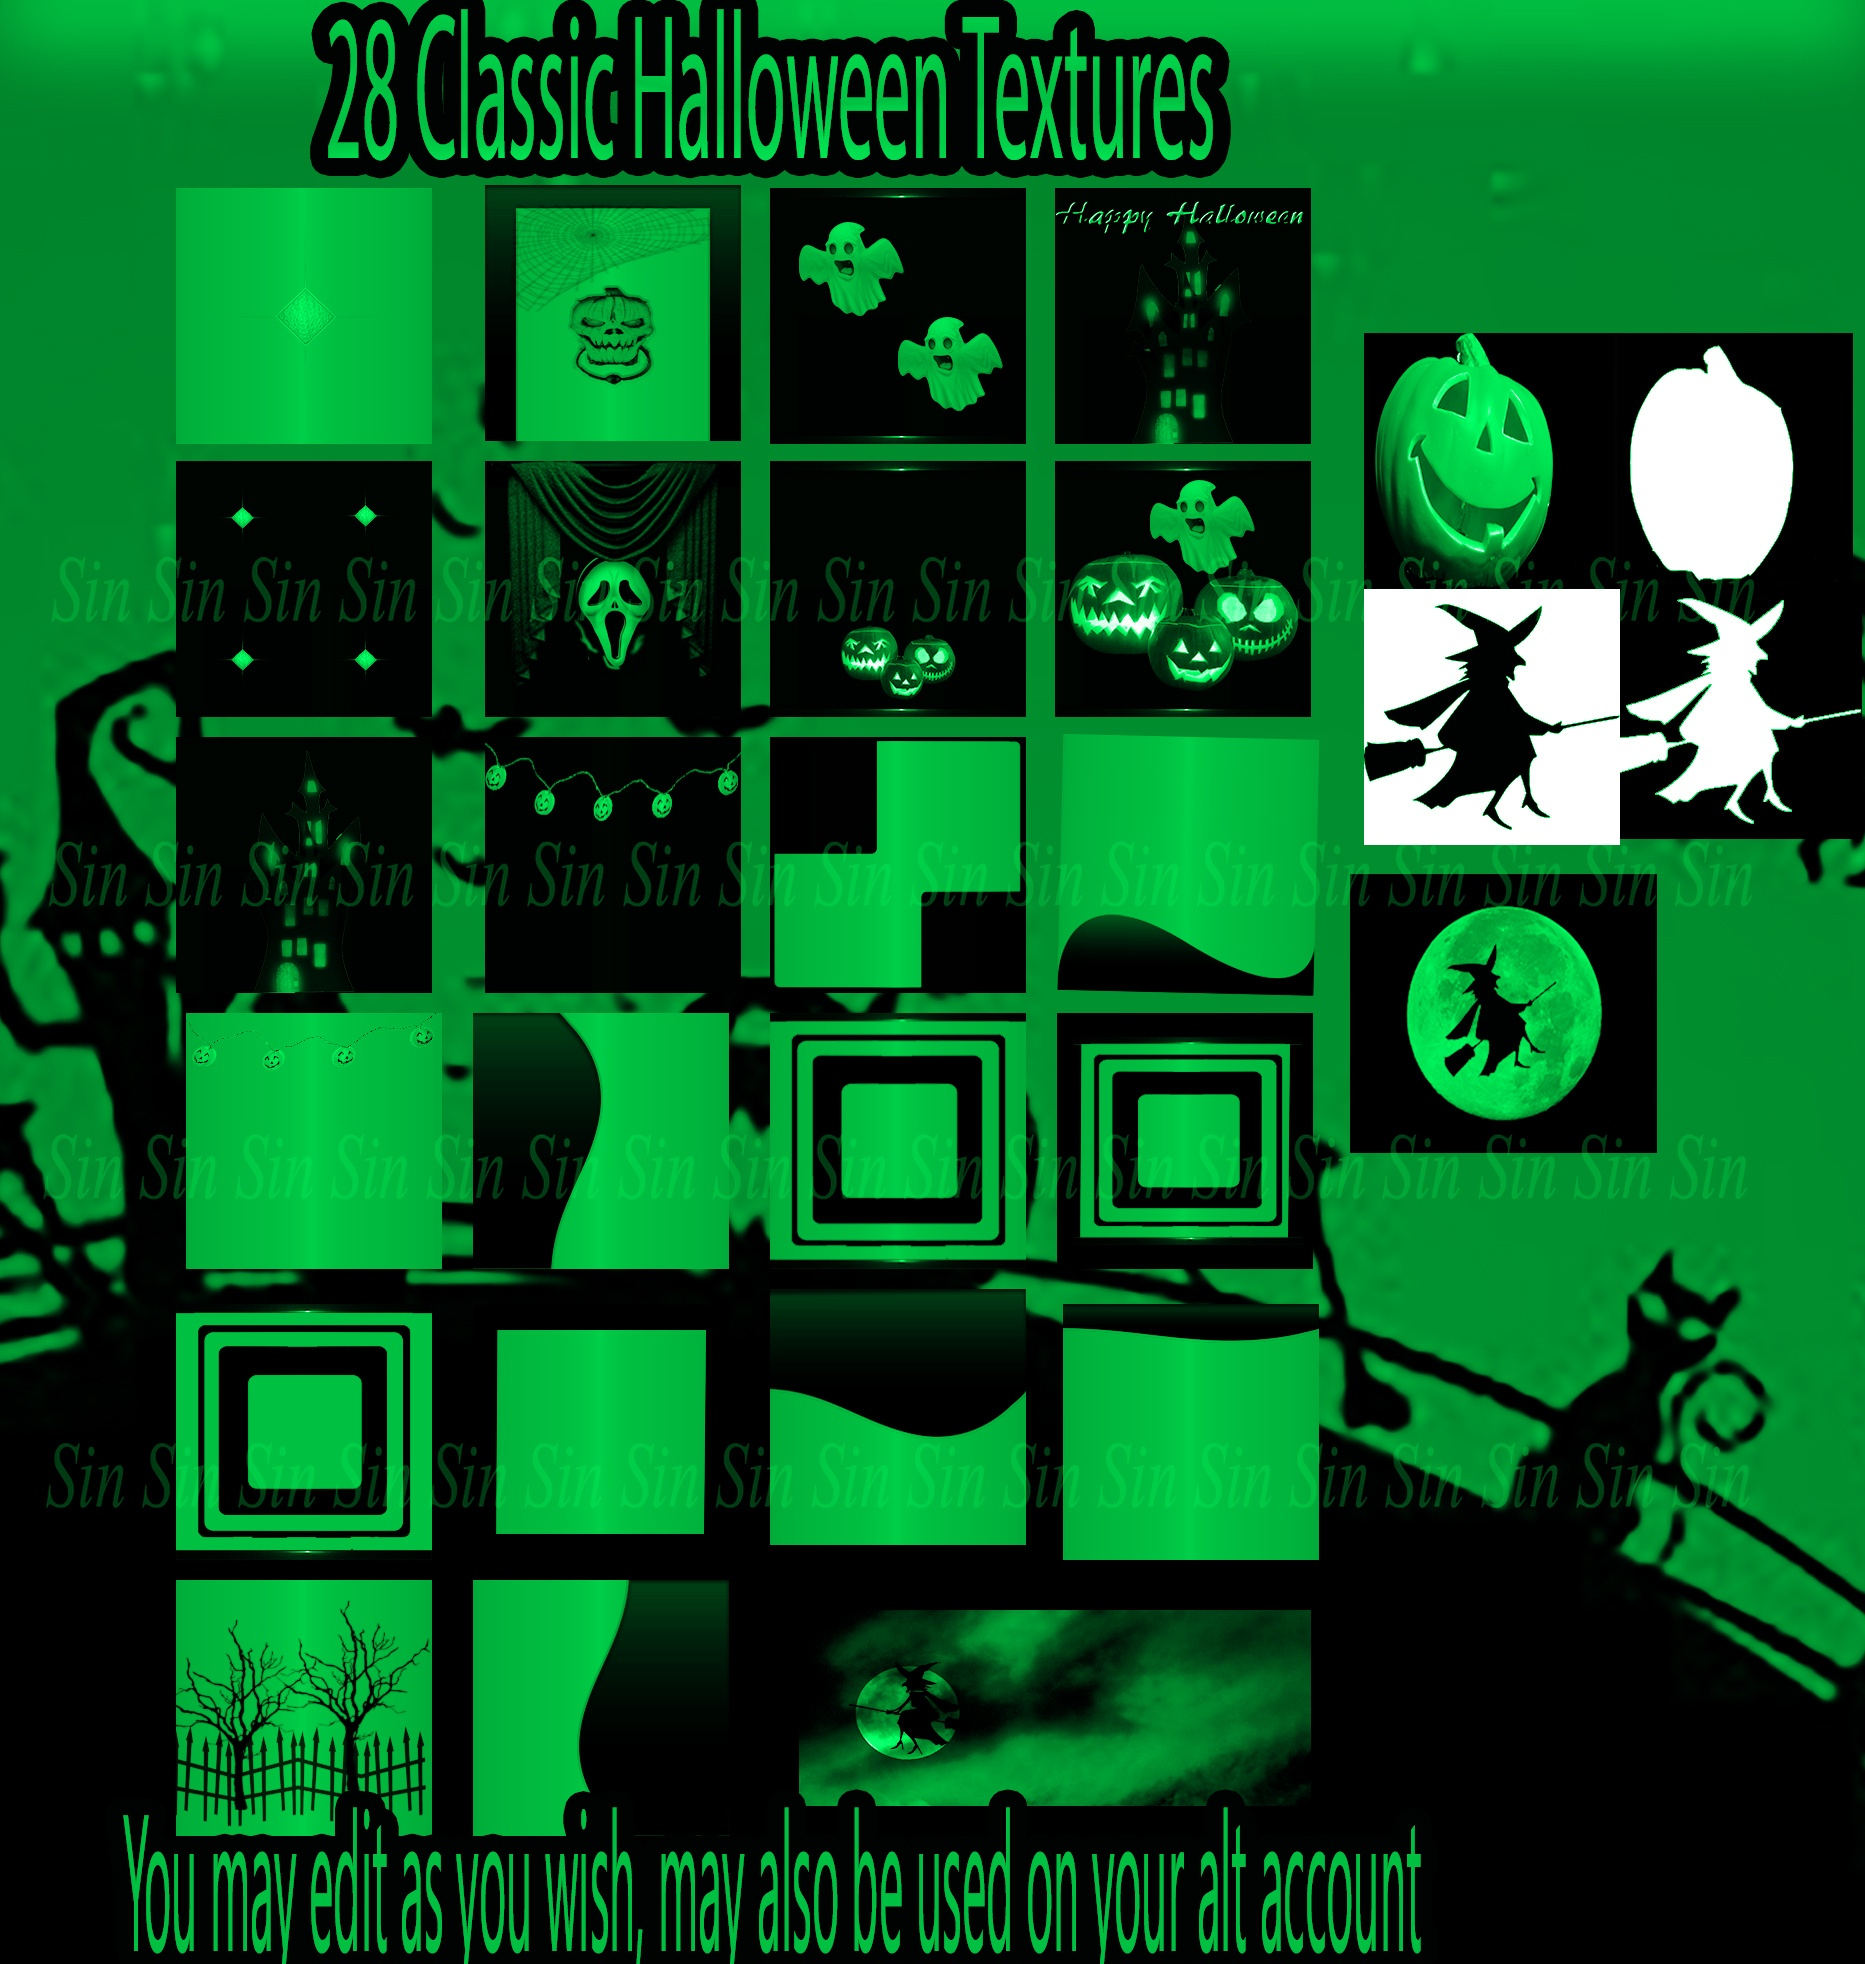 Classic Green Halloween Textures* May use on alt account*